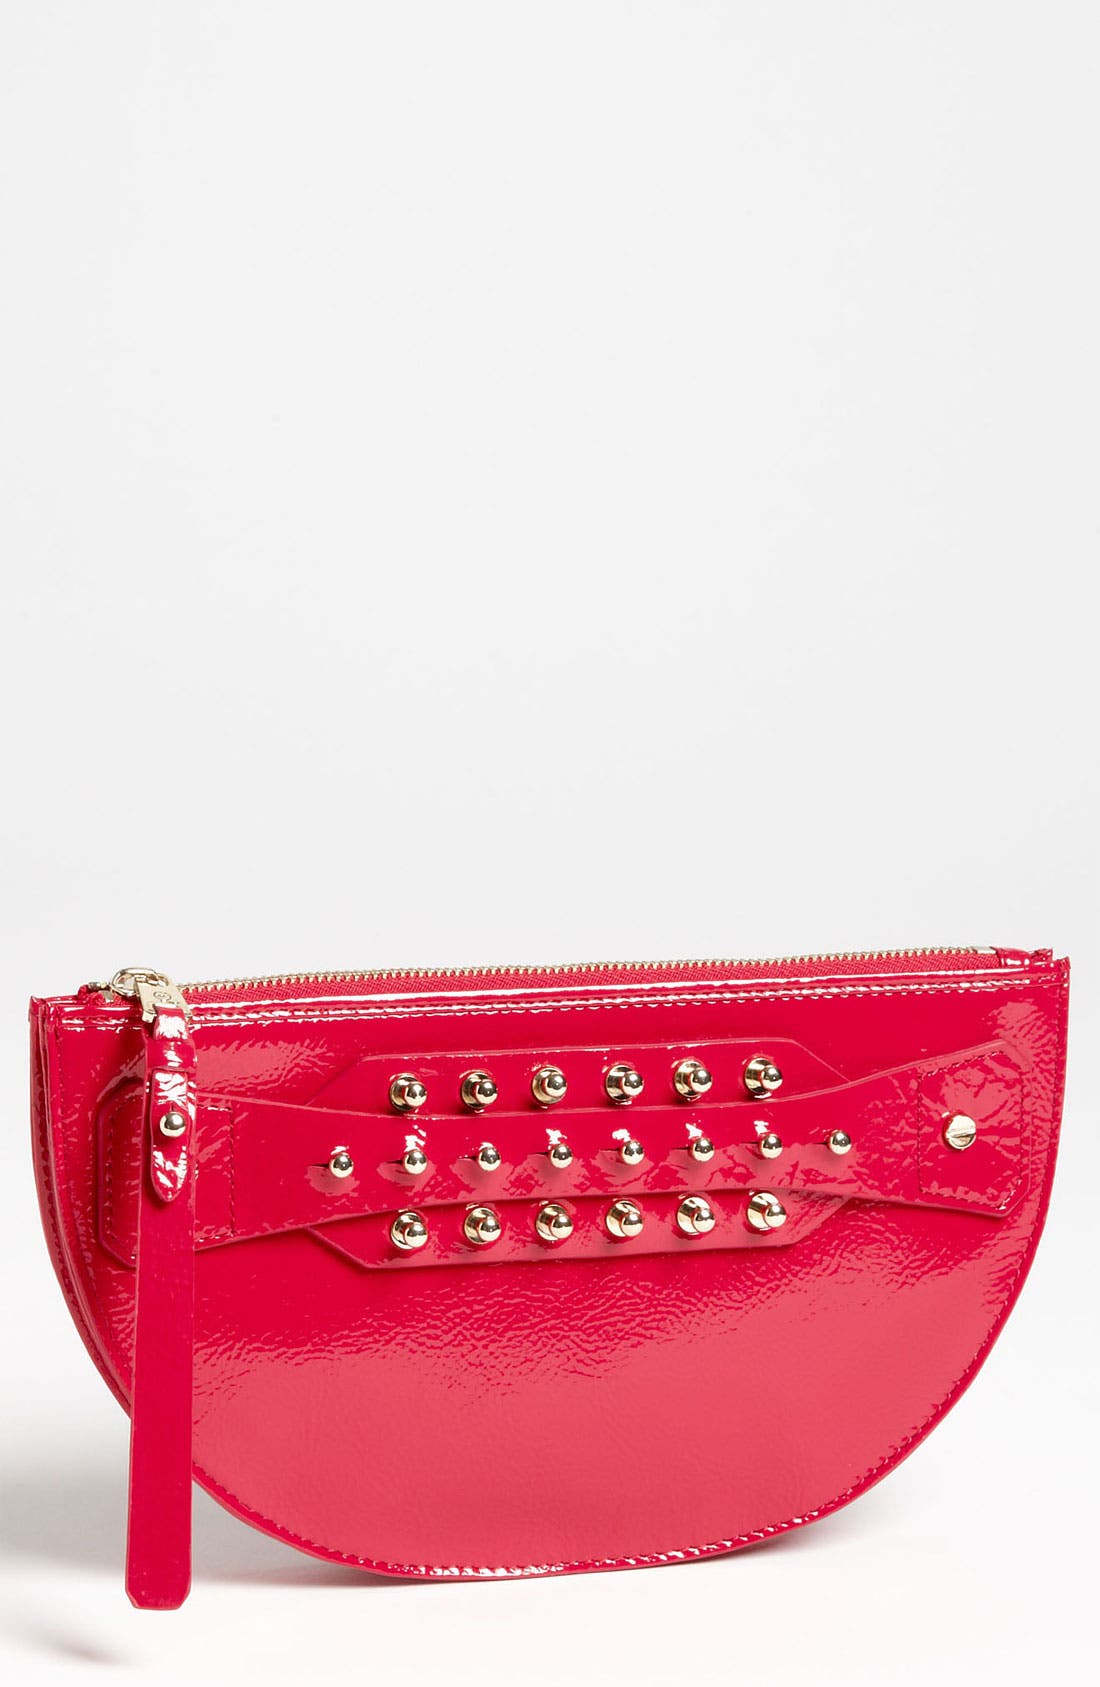 Main Image - McQ by Alexander McQueen 'Large' Patent Leather Coin Clutch